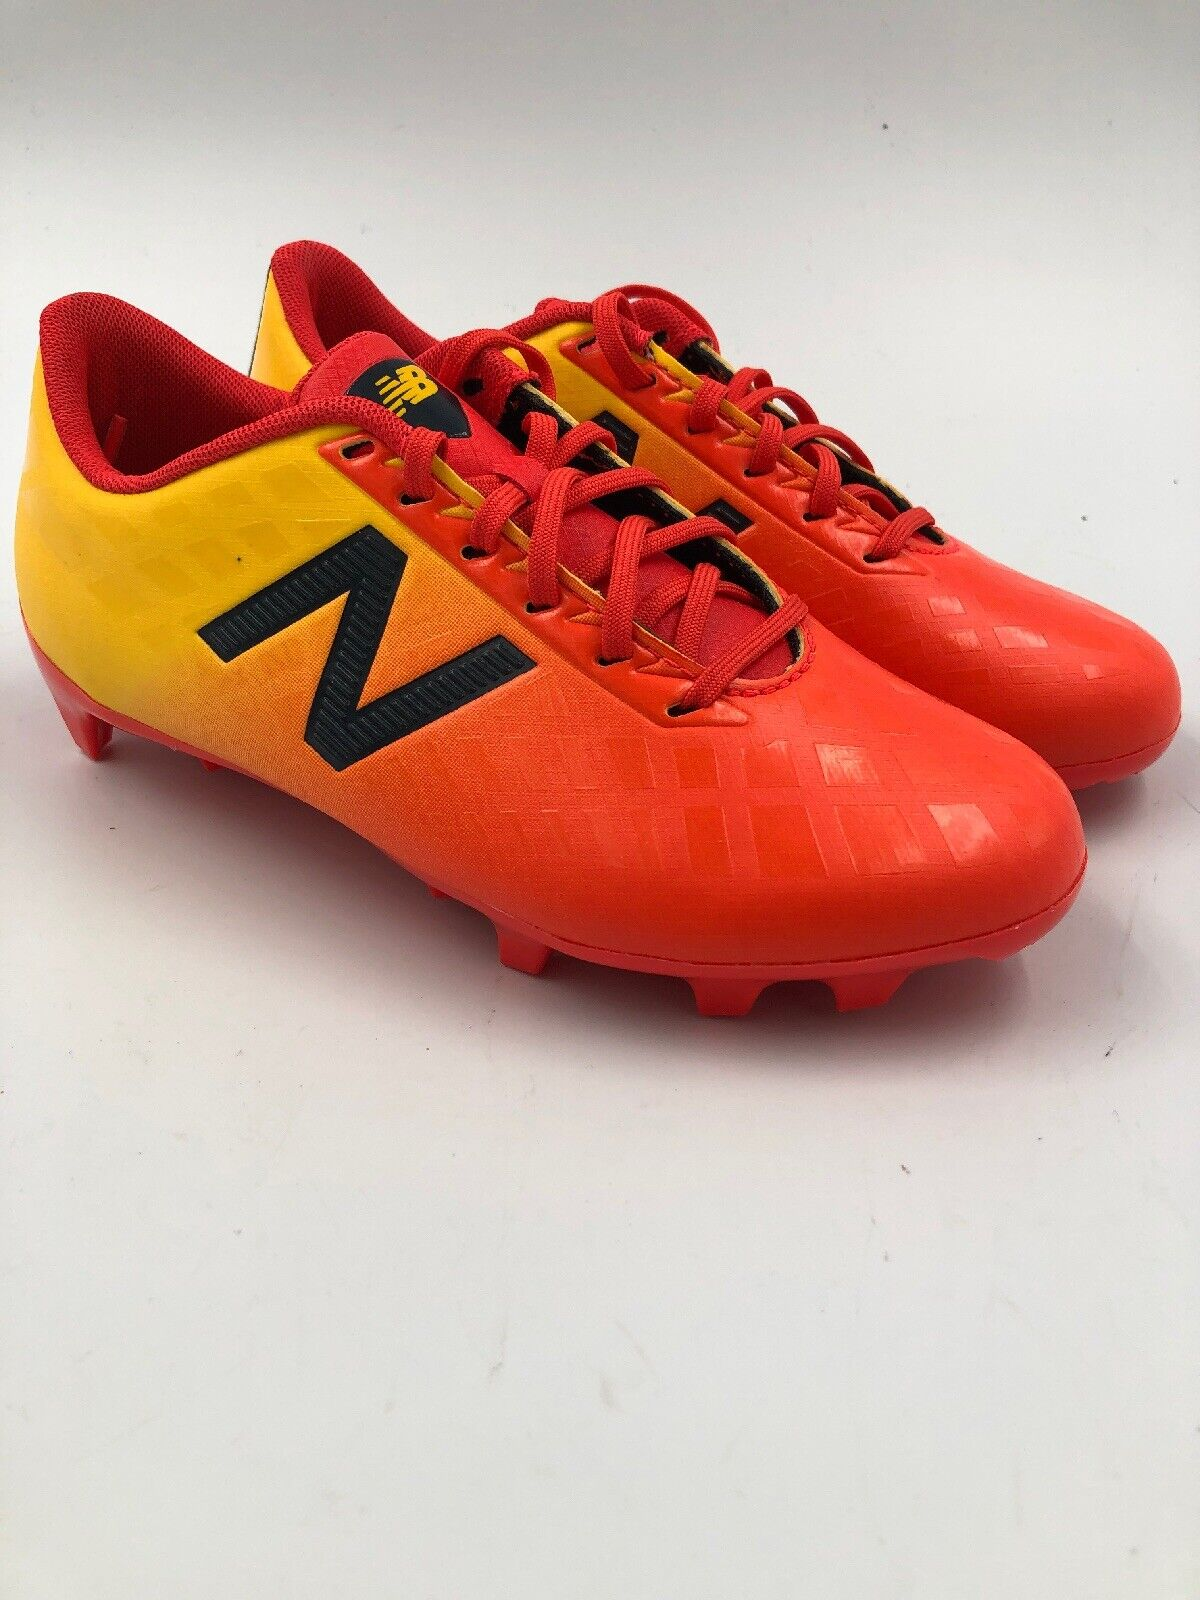 New Balance Furon 4 orange yellow Cleats Youth Size 1.5 Soccer - Never Worn